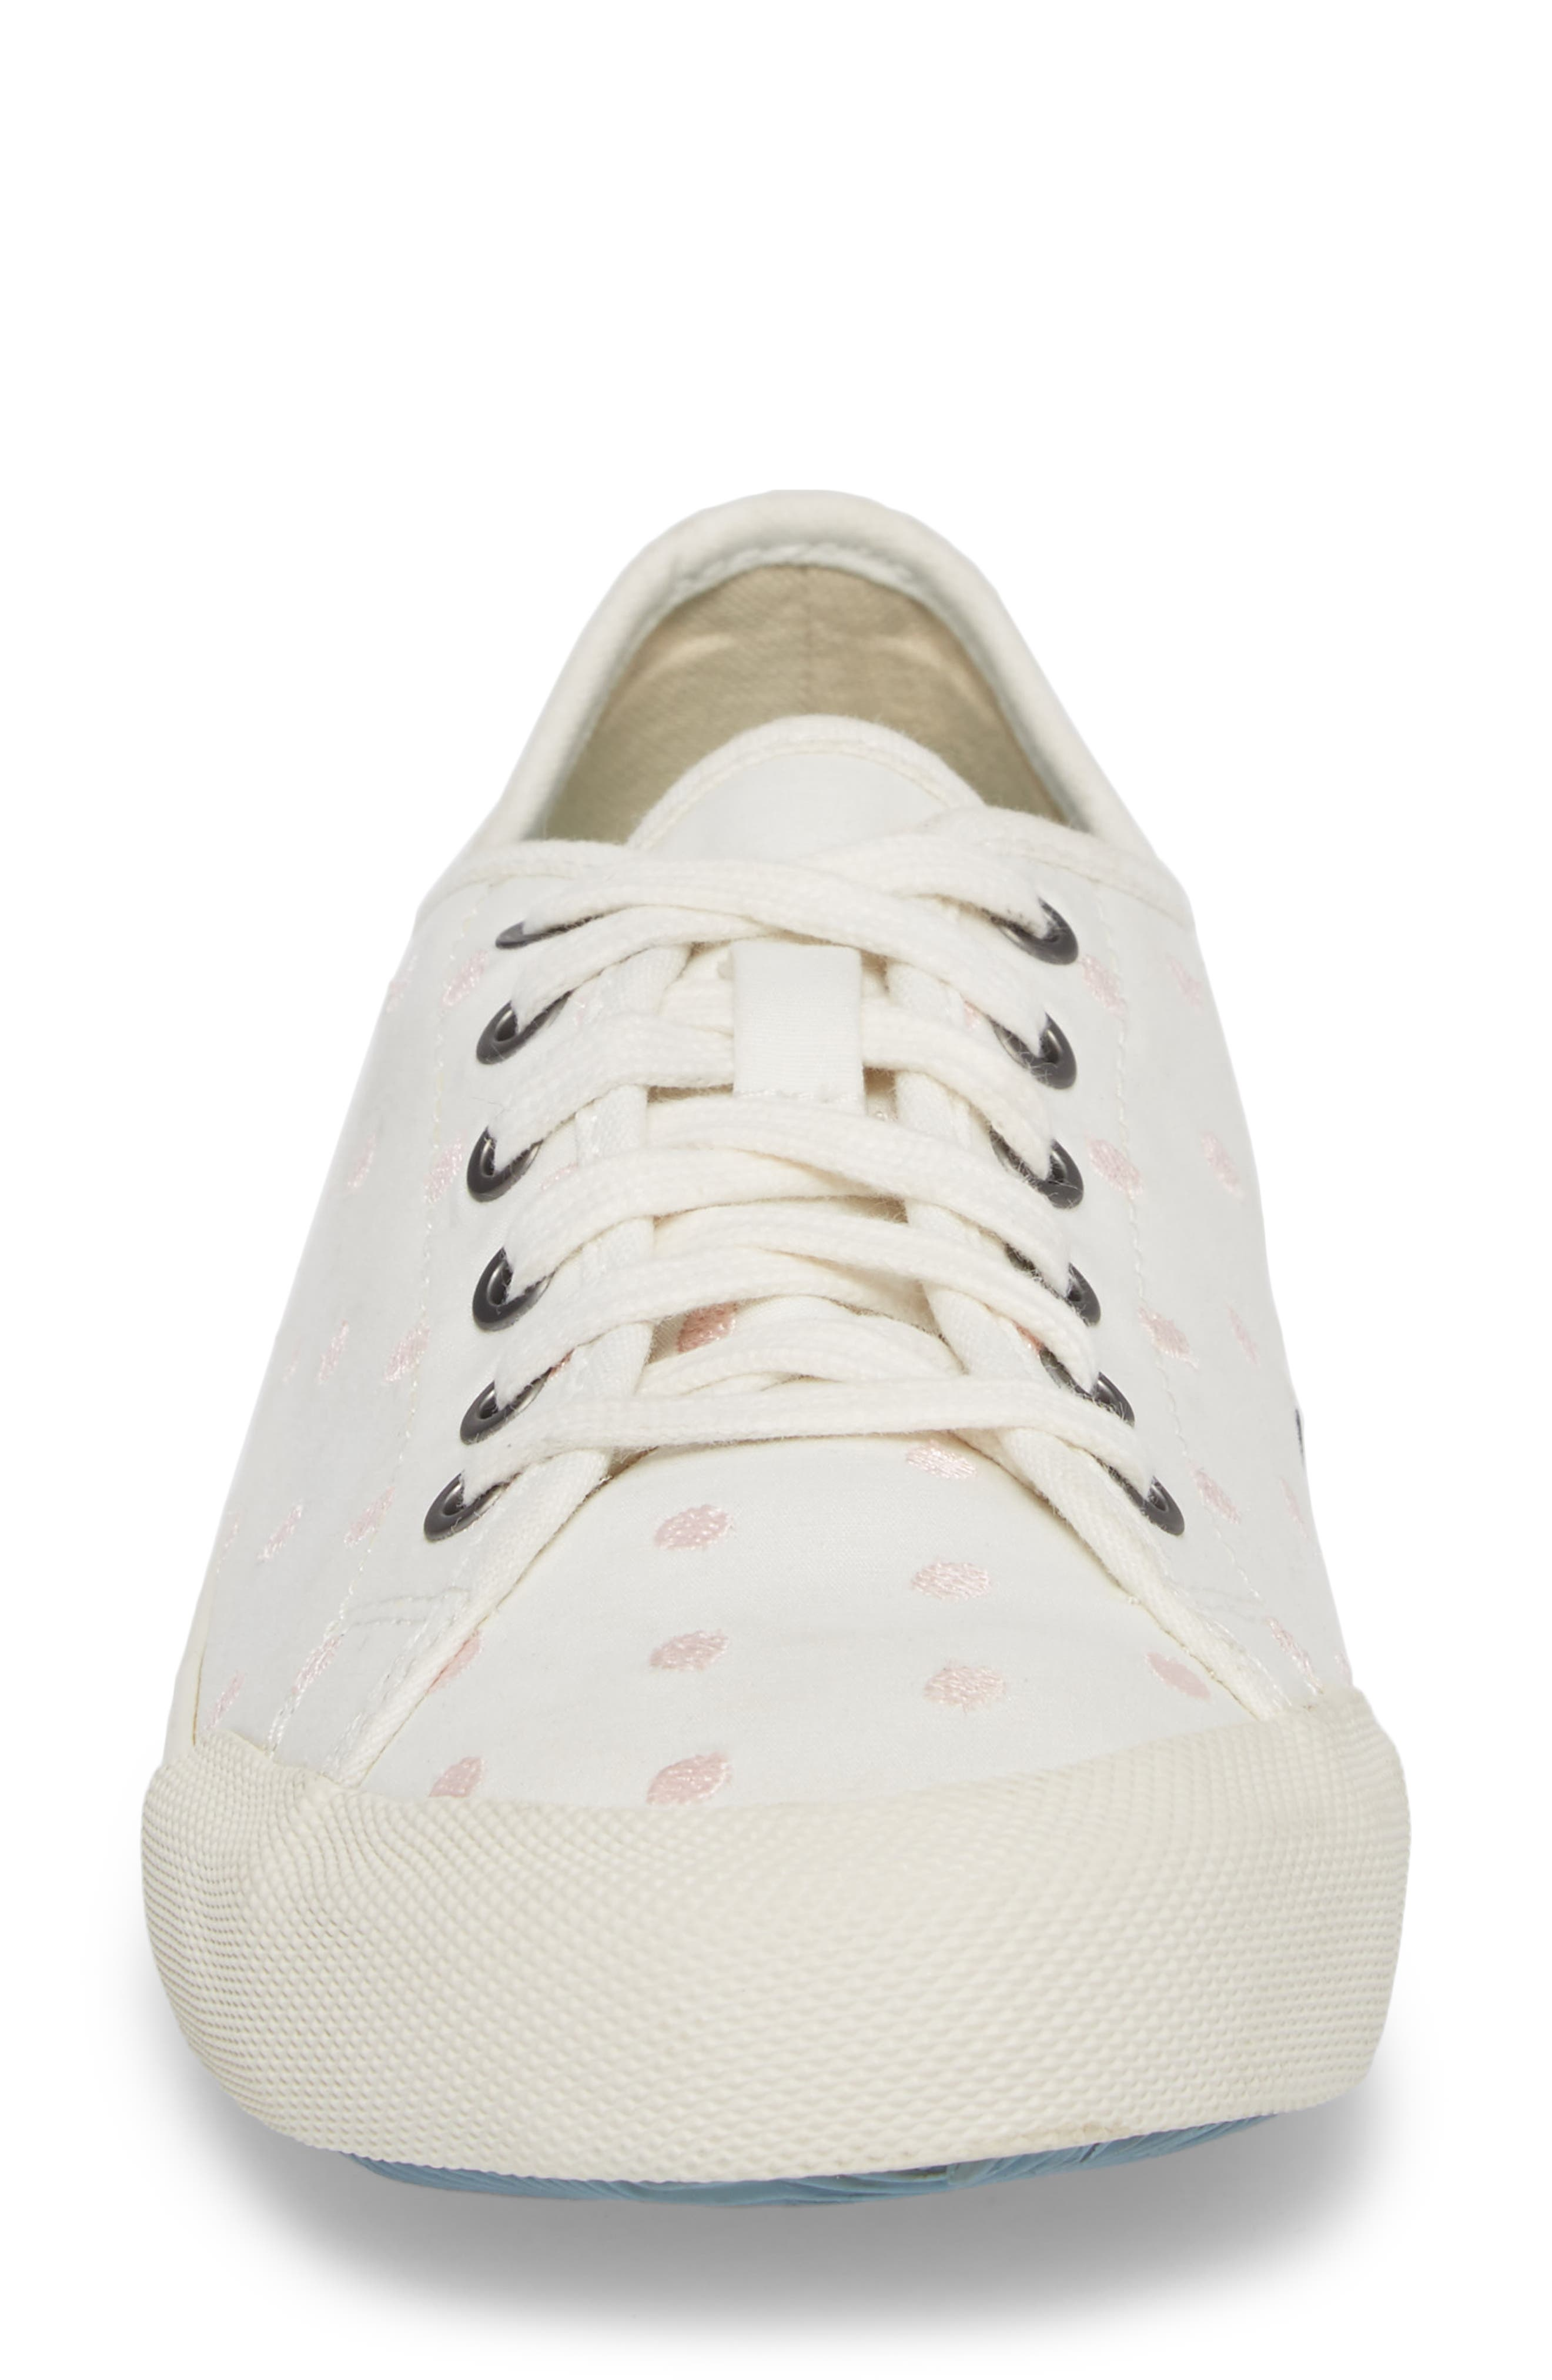 Monterey Embroidered Low Top Sneaker,                             Alternate thumbnail 4, color,                             Pearl